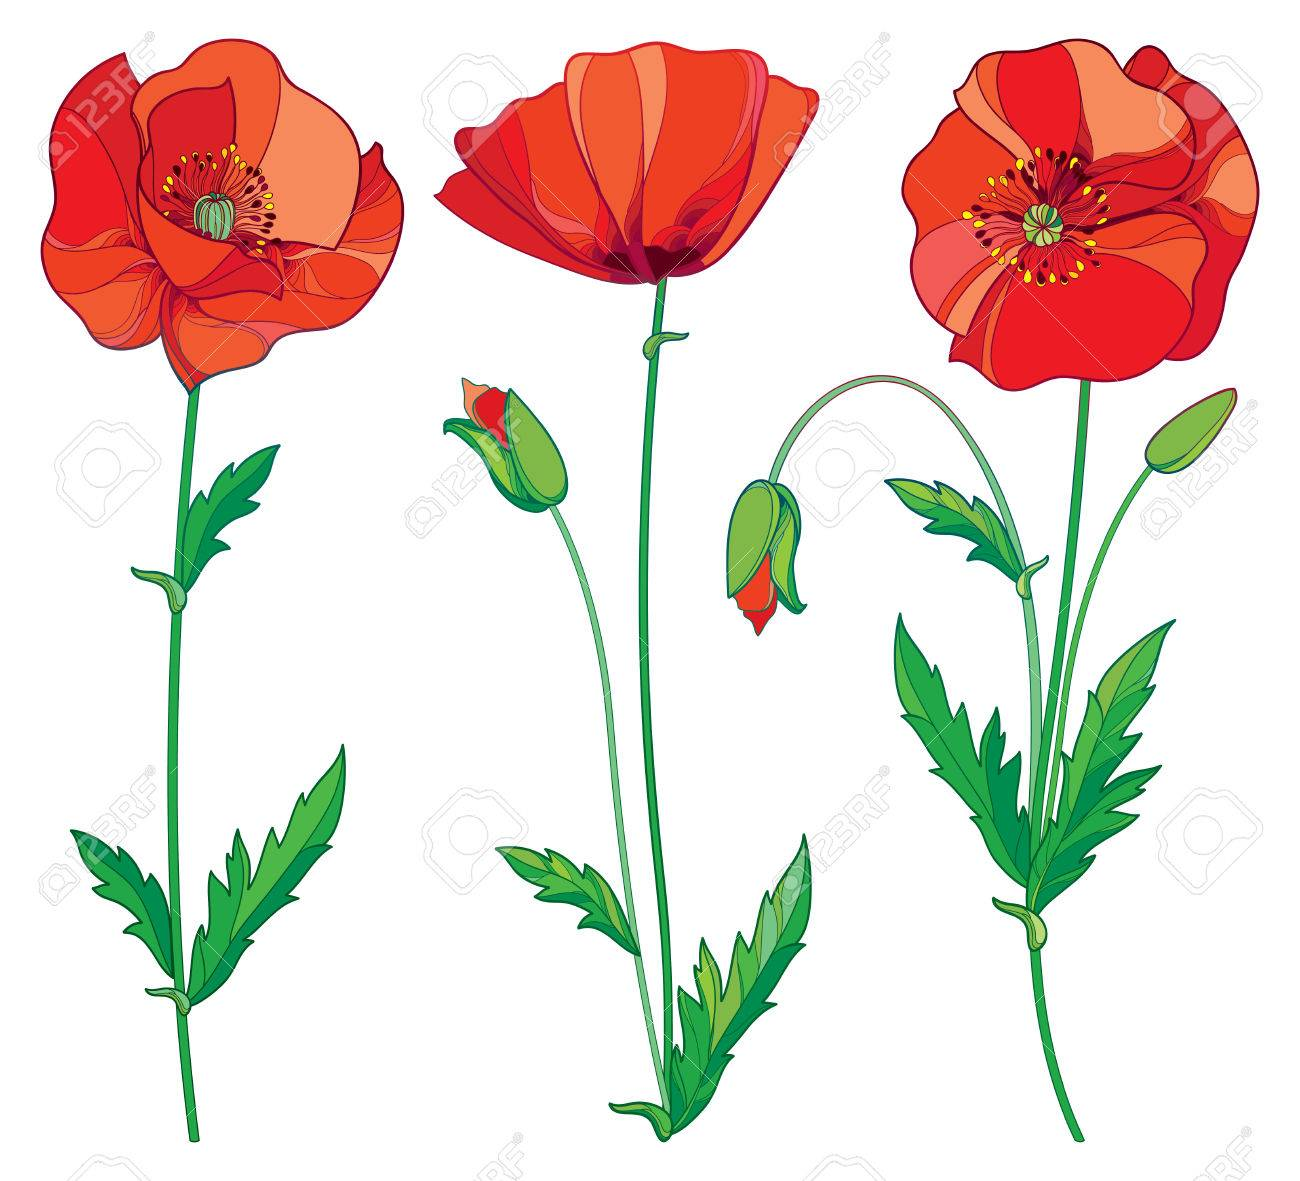 What Is The Meaning Of The Poppy Flower Gallery Flower Decoration